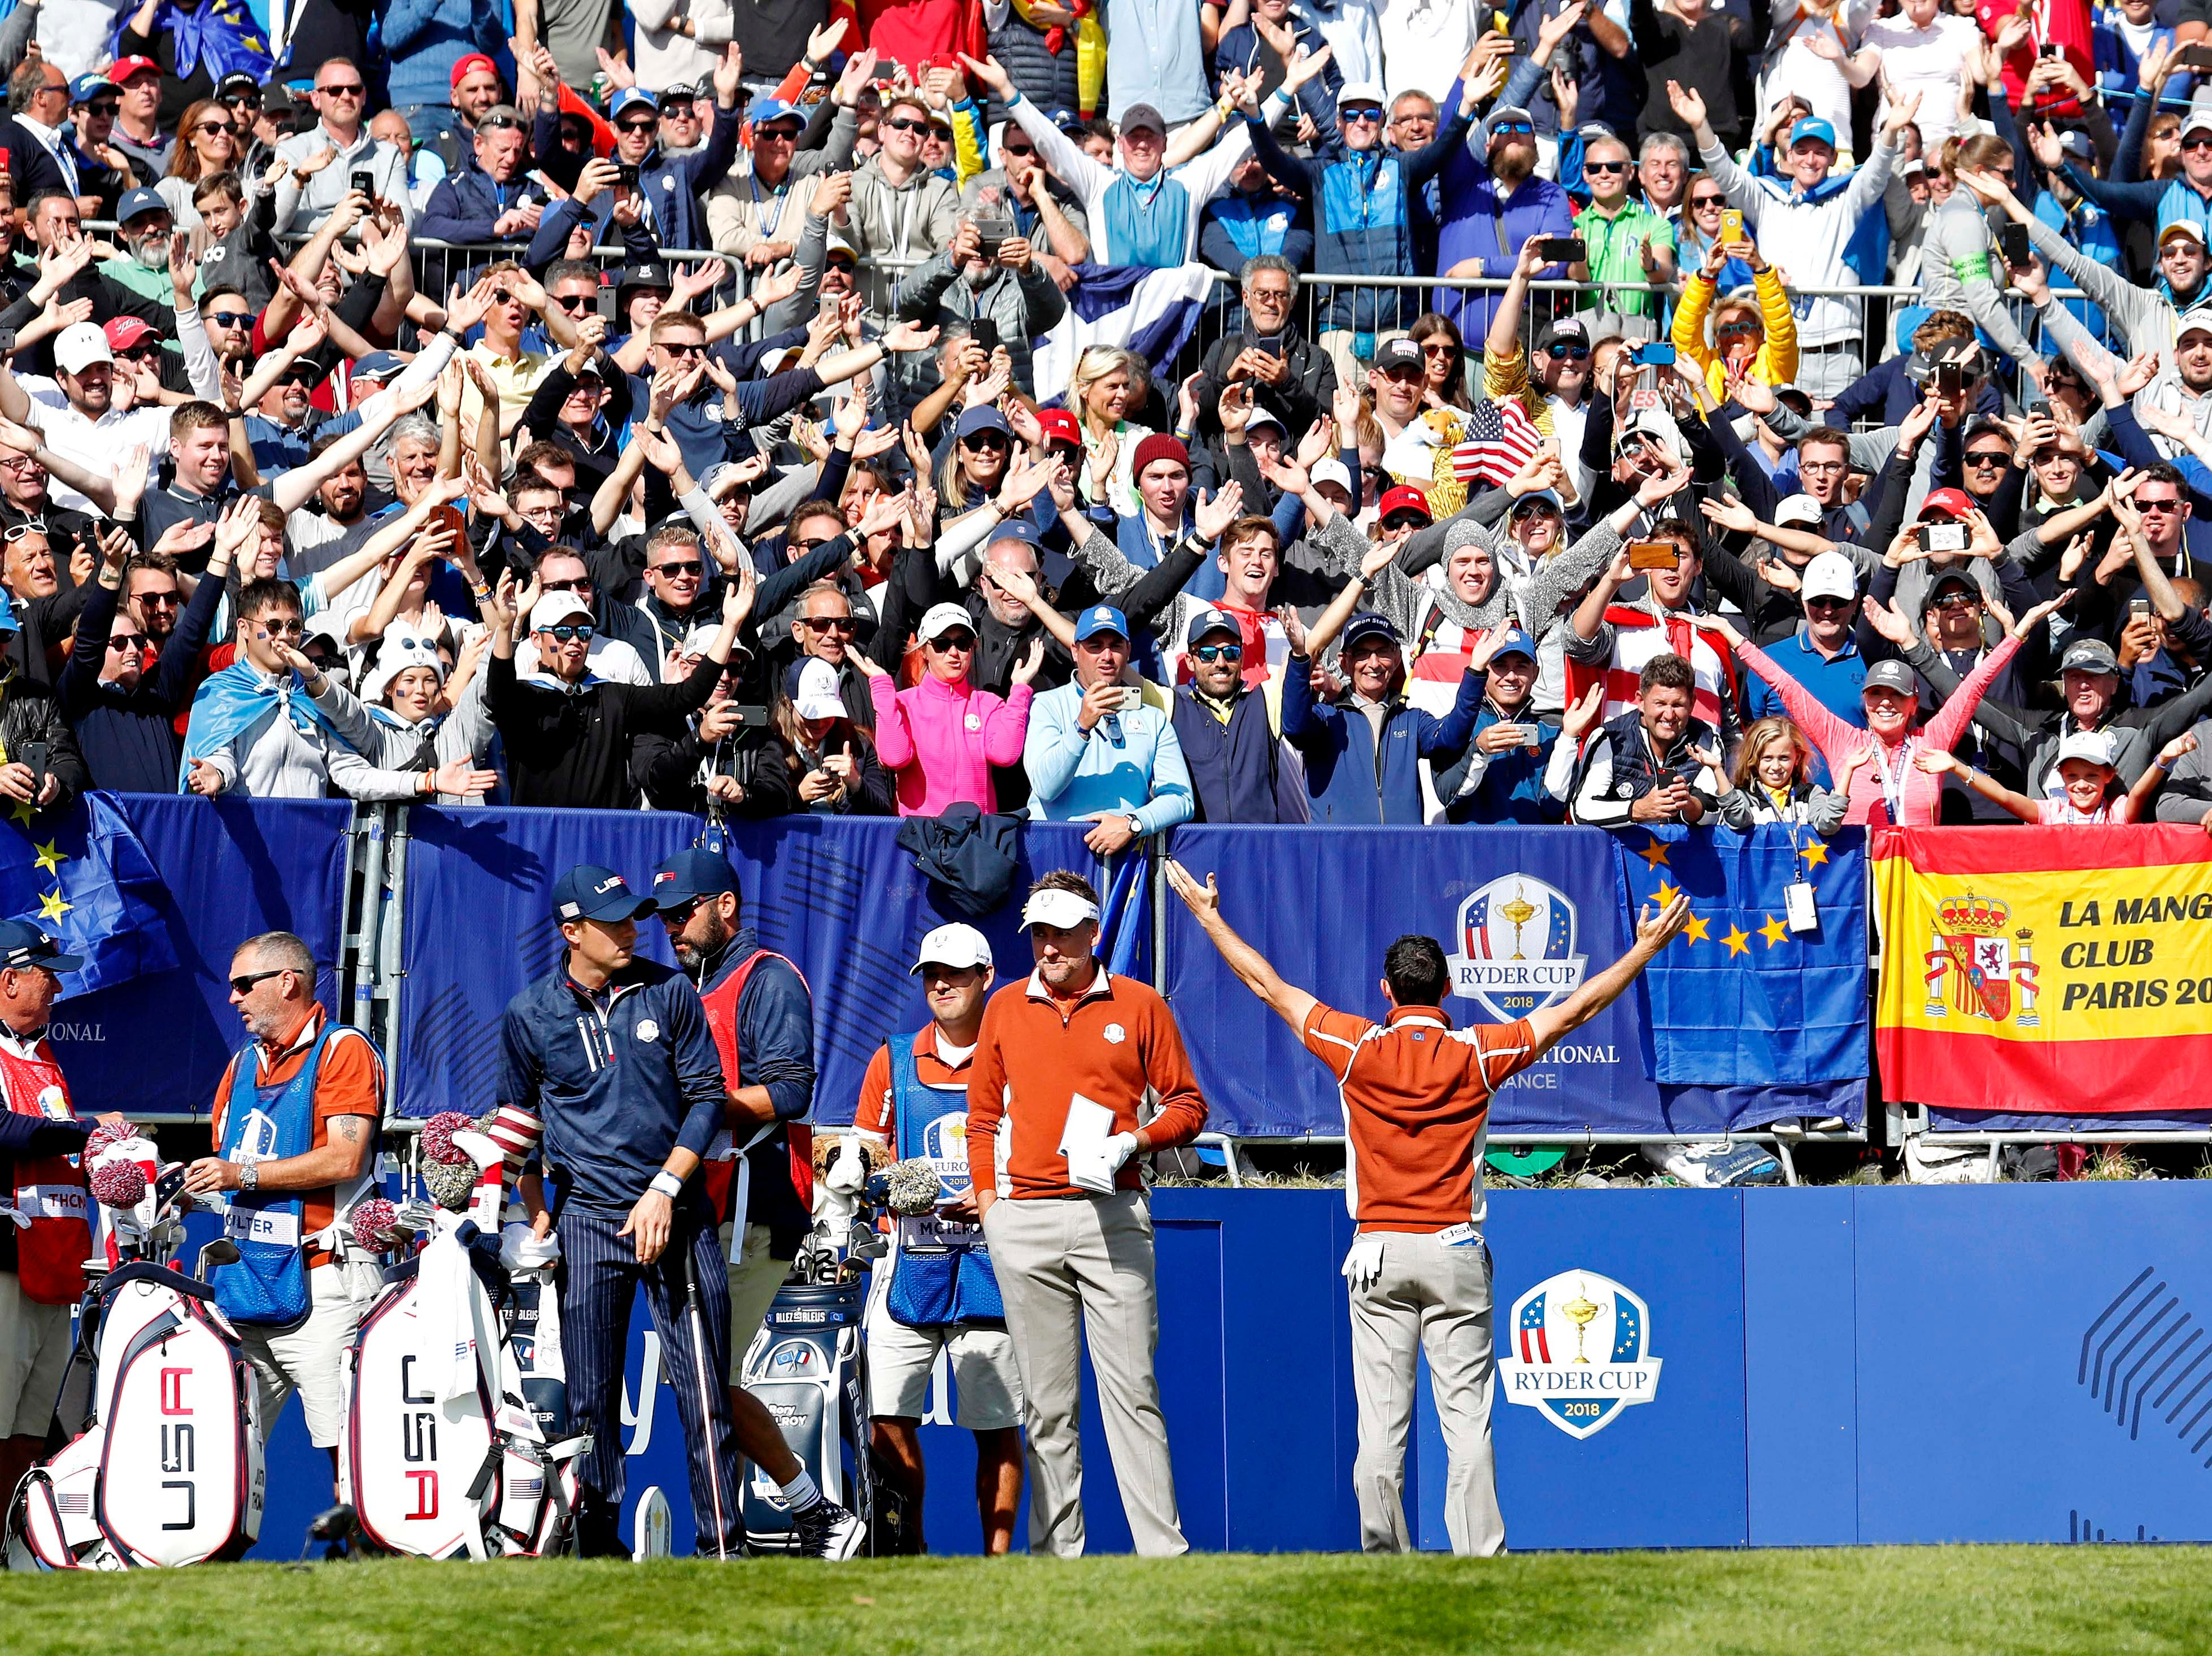 Europe's Rory McIlroy leads the crowd in a clap on the first hole during the afternoon session Saturday.